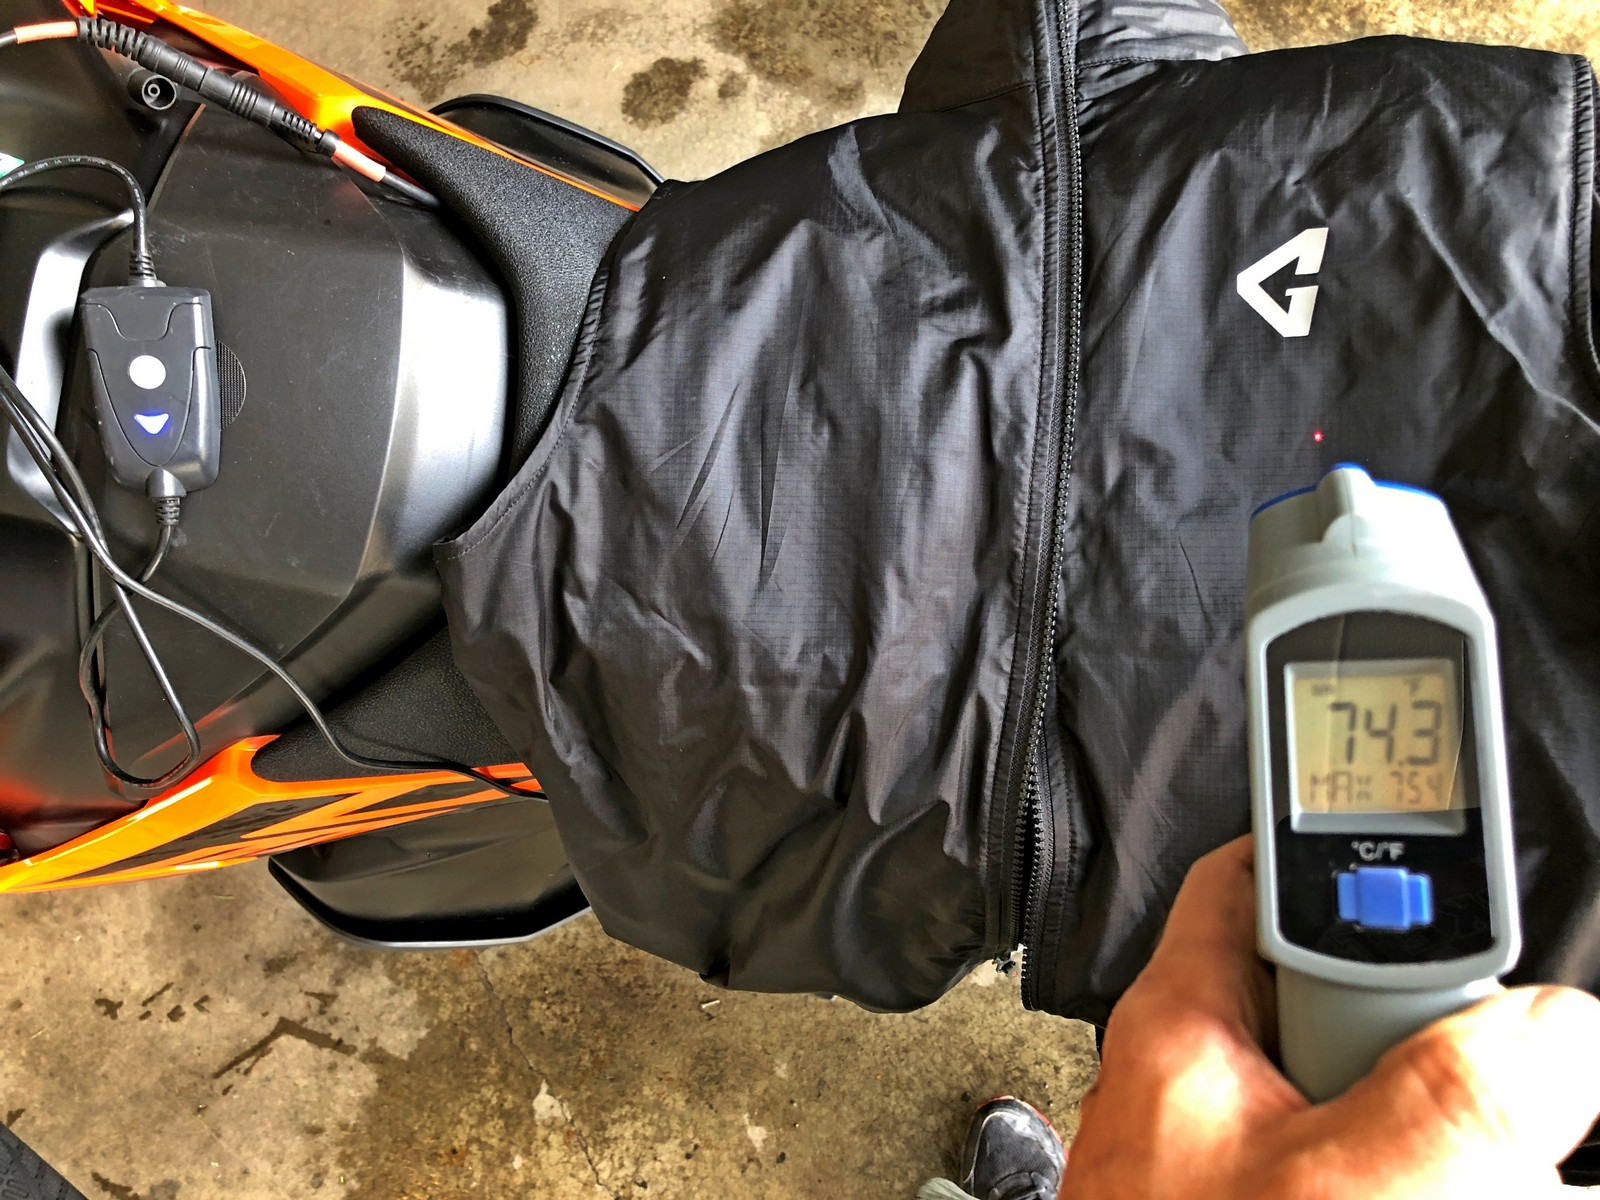 Gerbing Vest heated at 74.3 degrees F